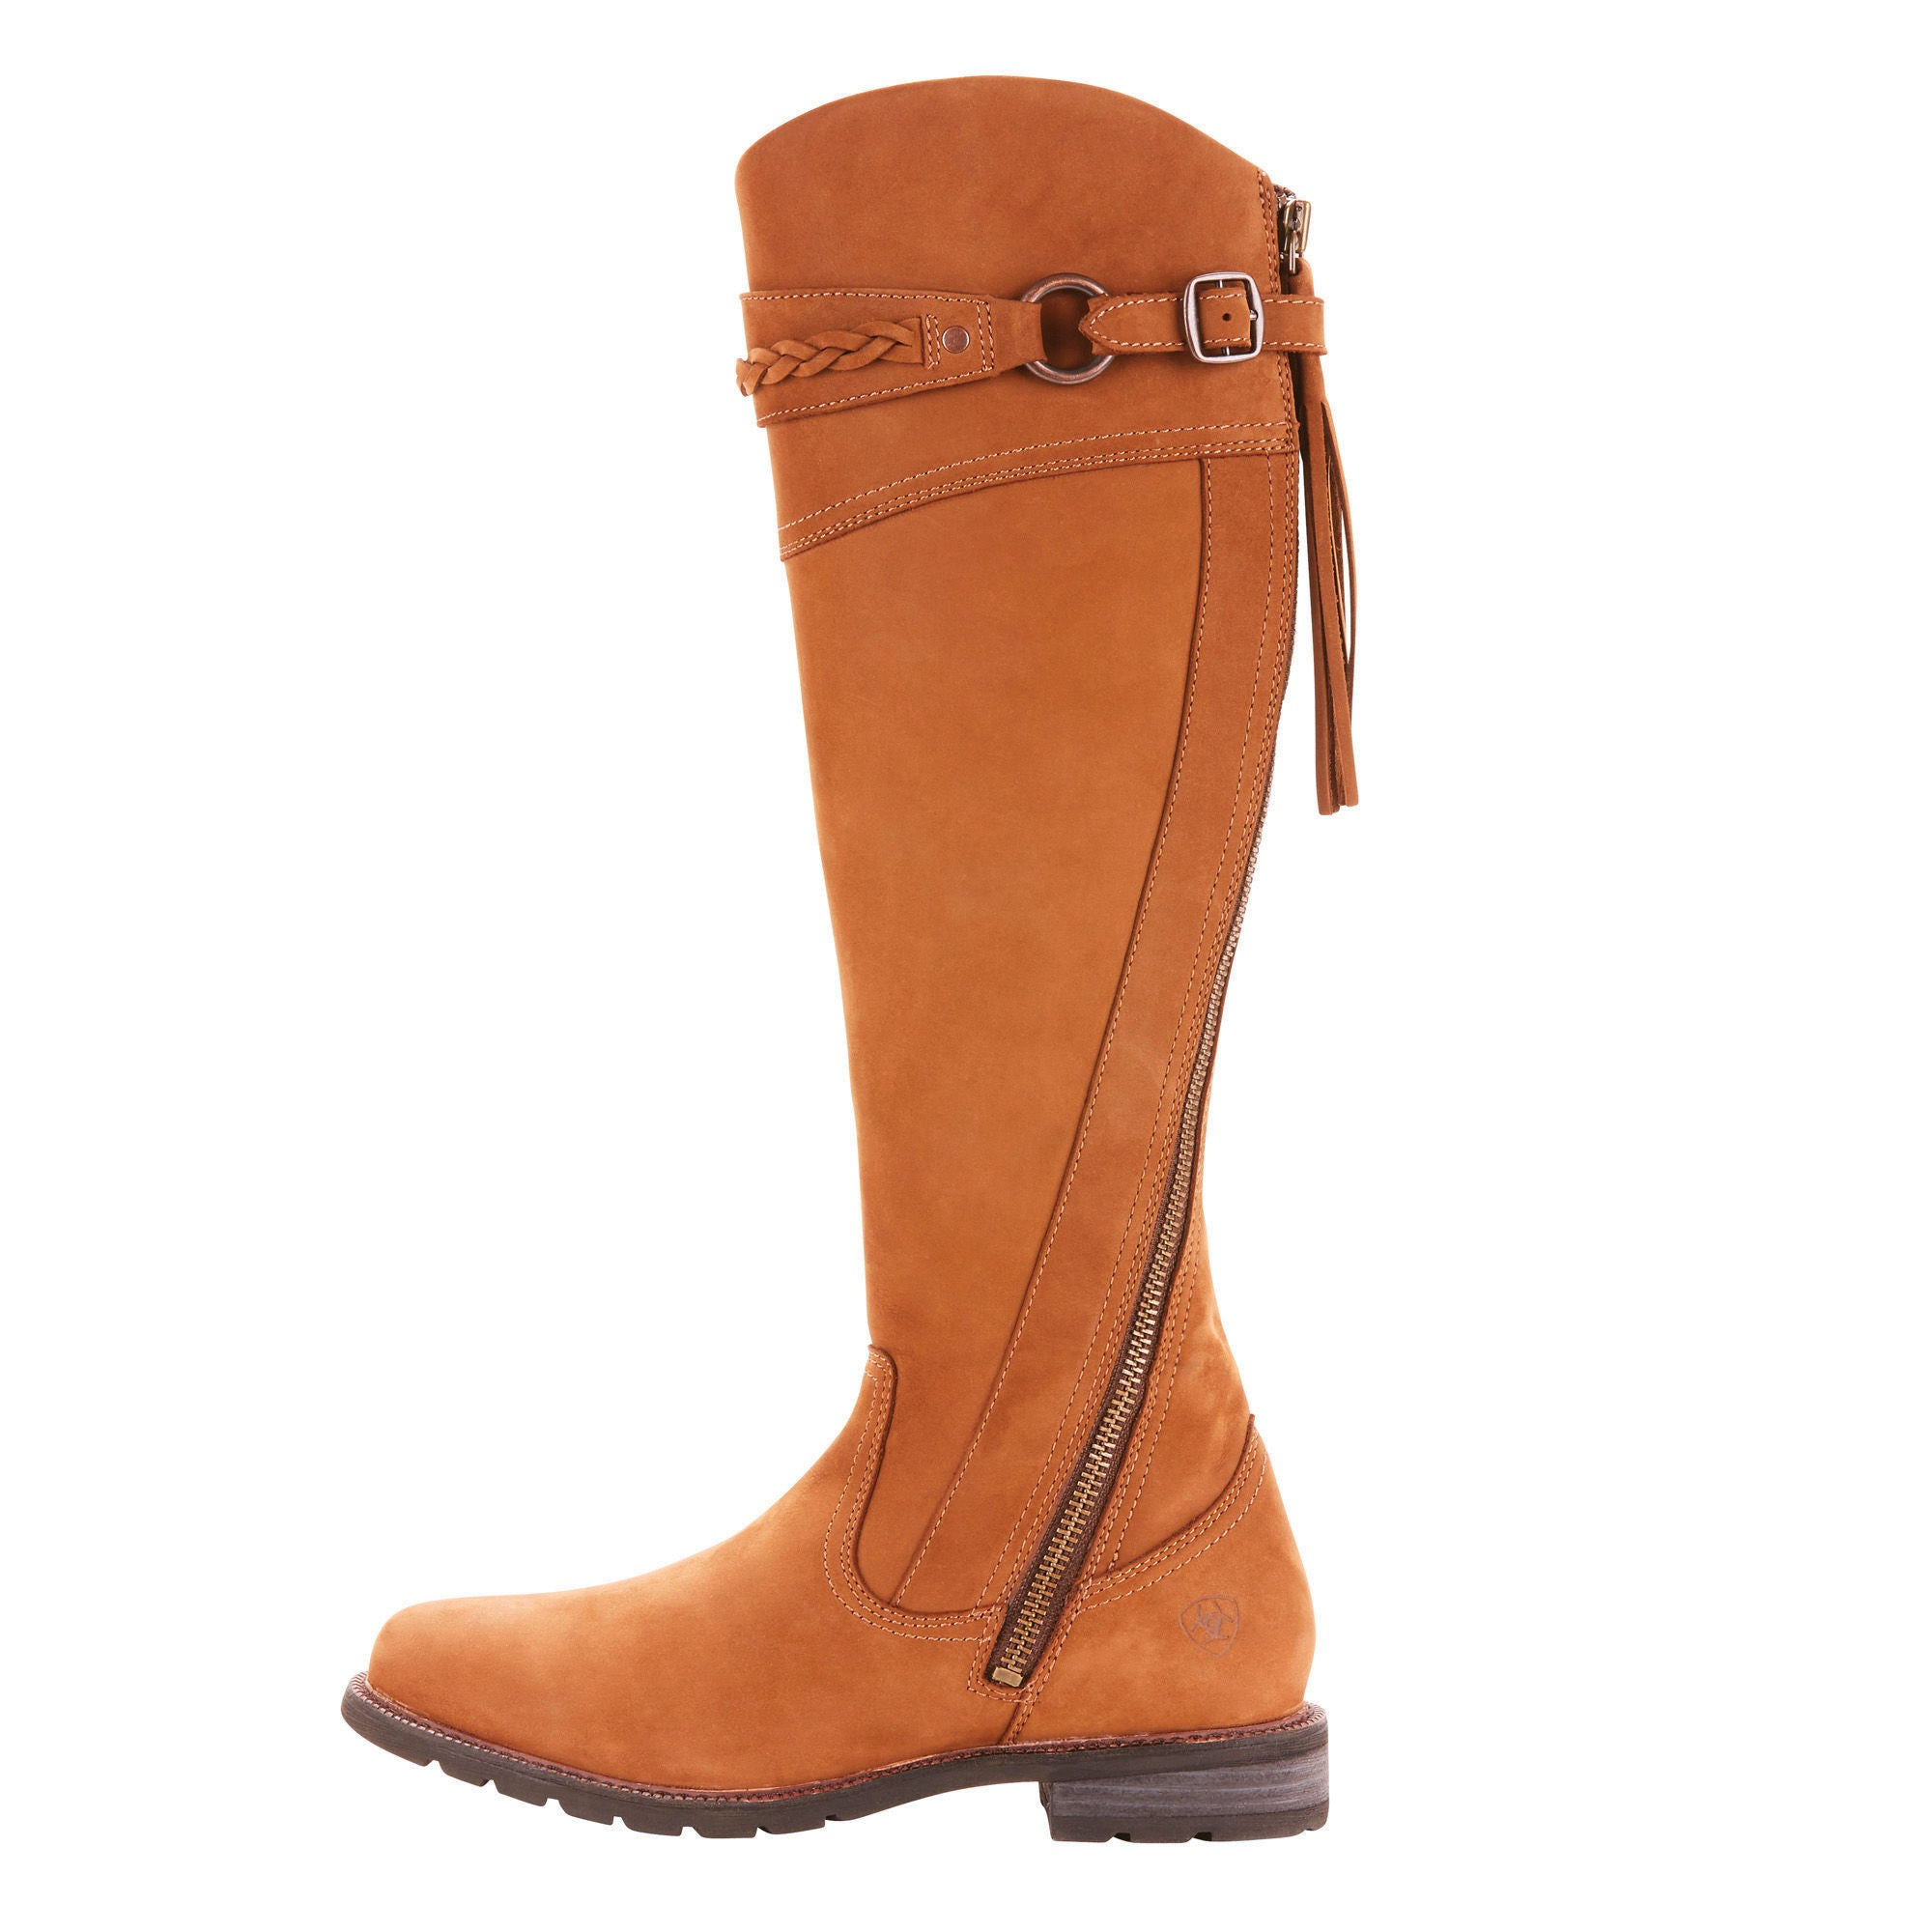 Ariat Alora Nubuck Boot for Ladies in Chestnut